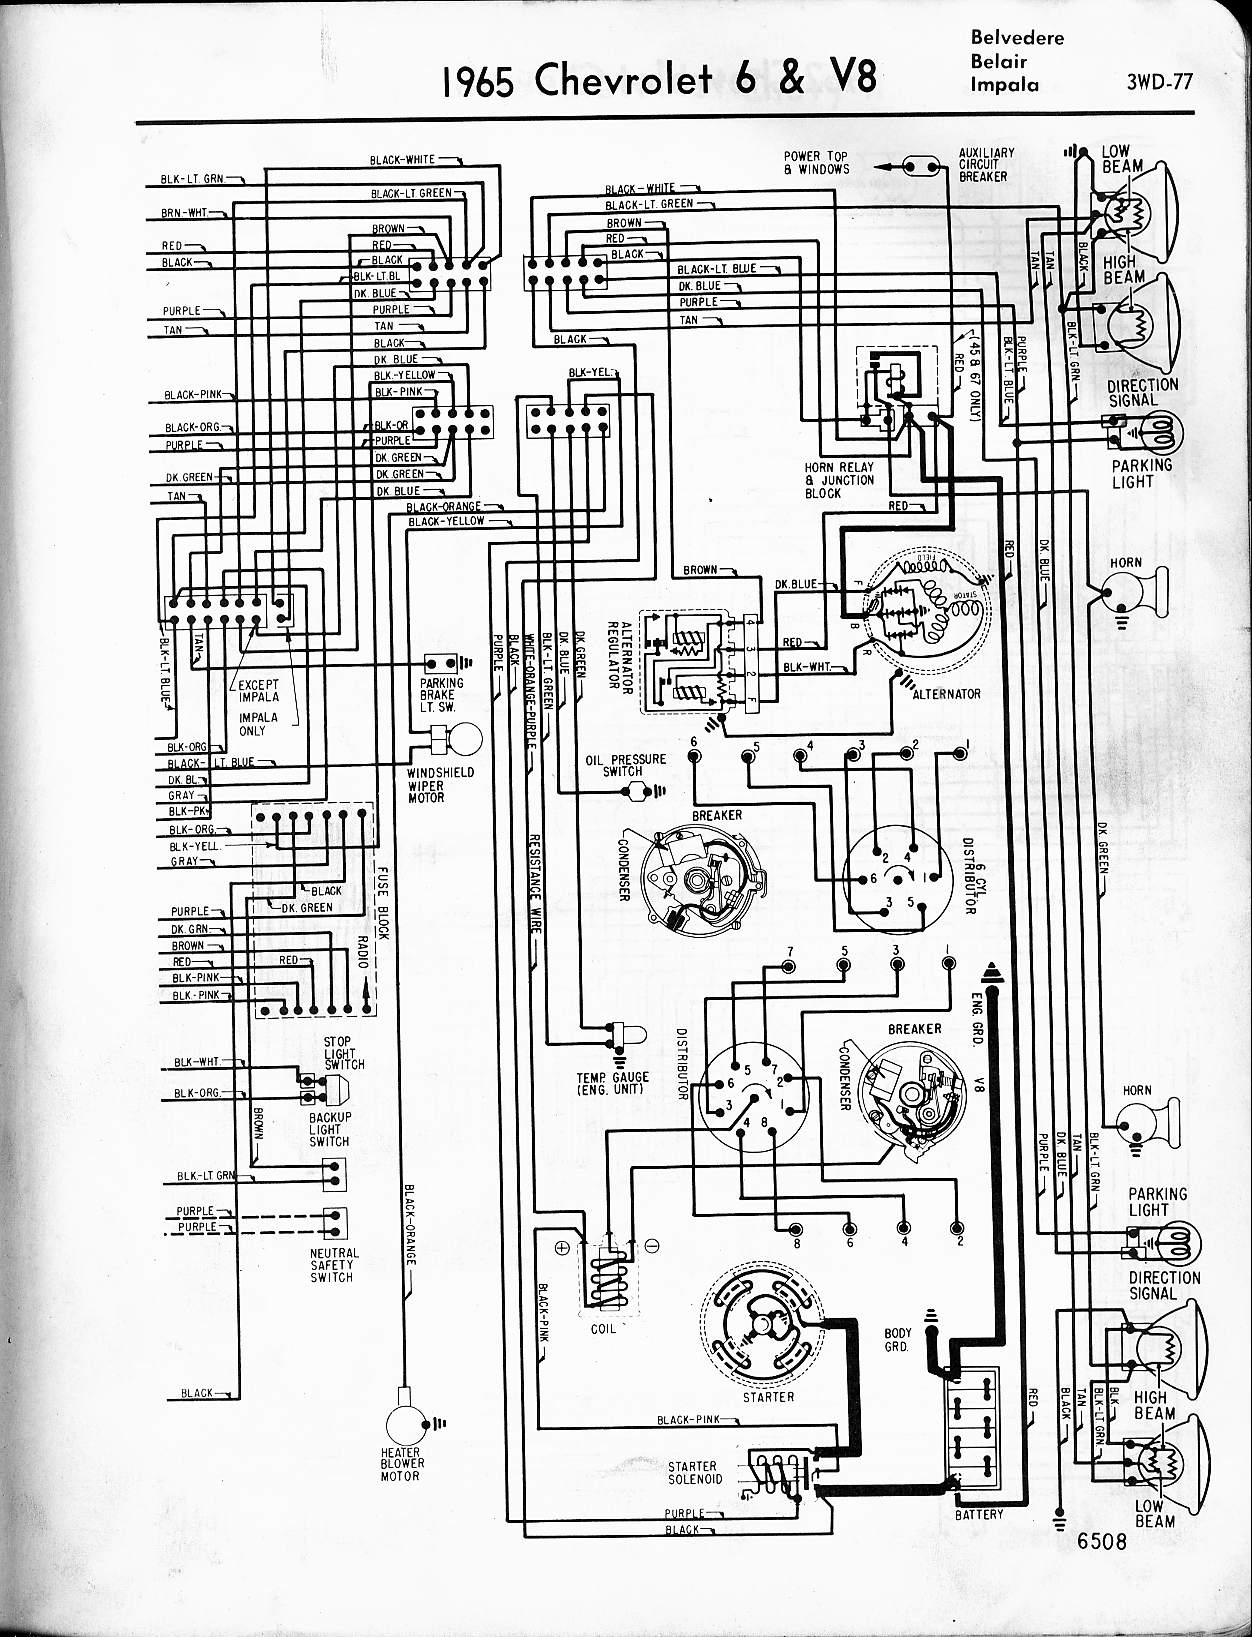 MWireChev65_3WD 077 chevy diagrams 66 chevy truck turn signal wiring diagram at soozxer.org